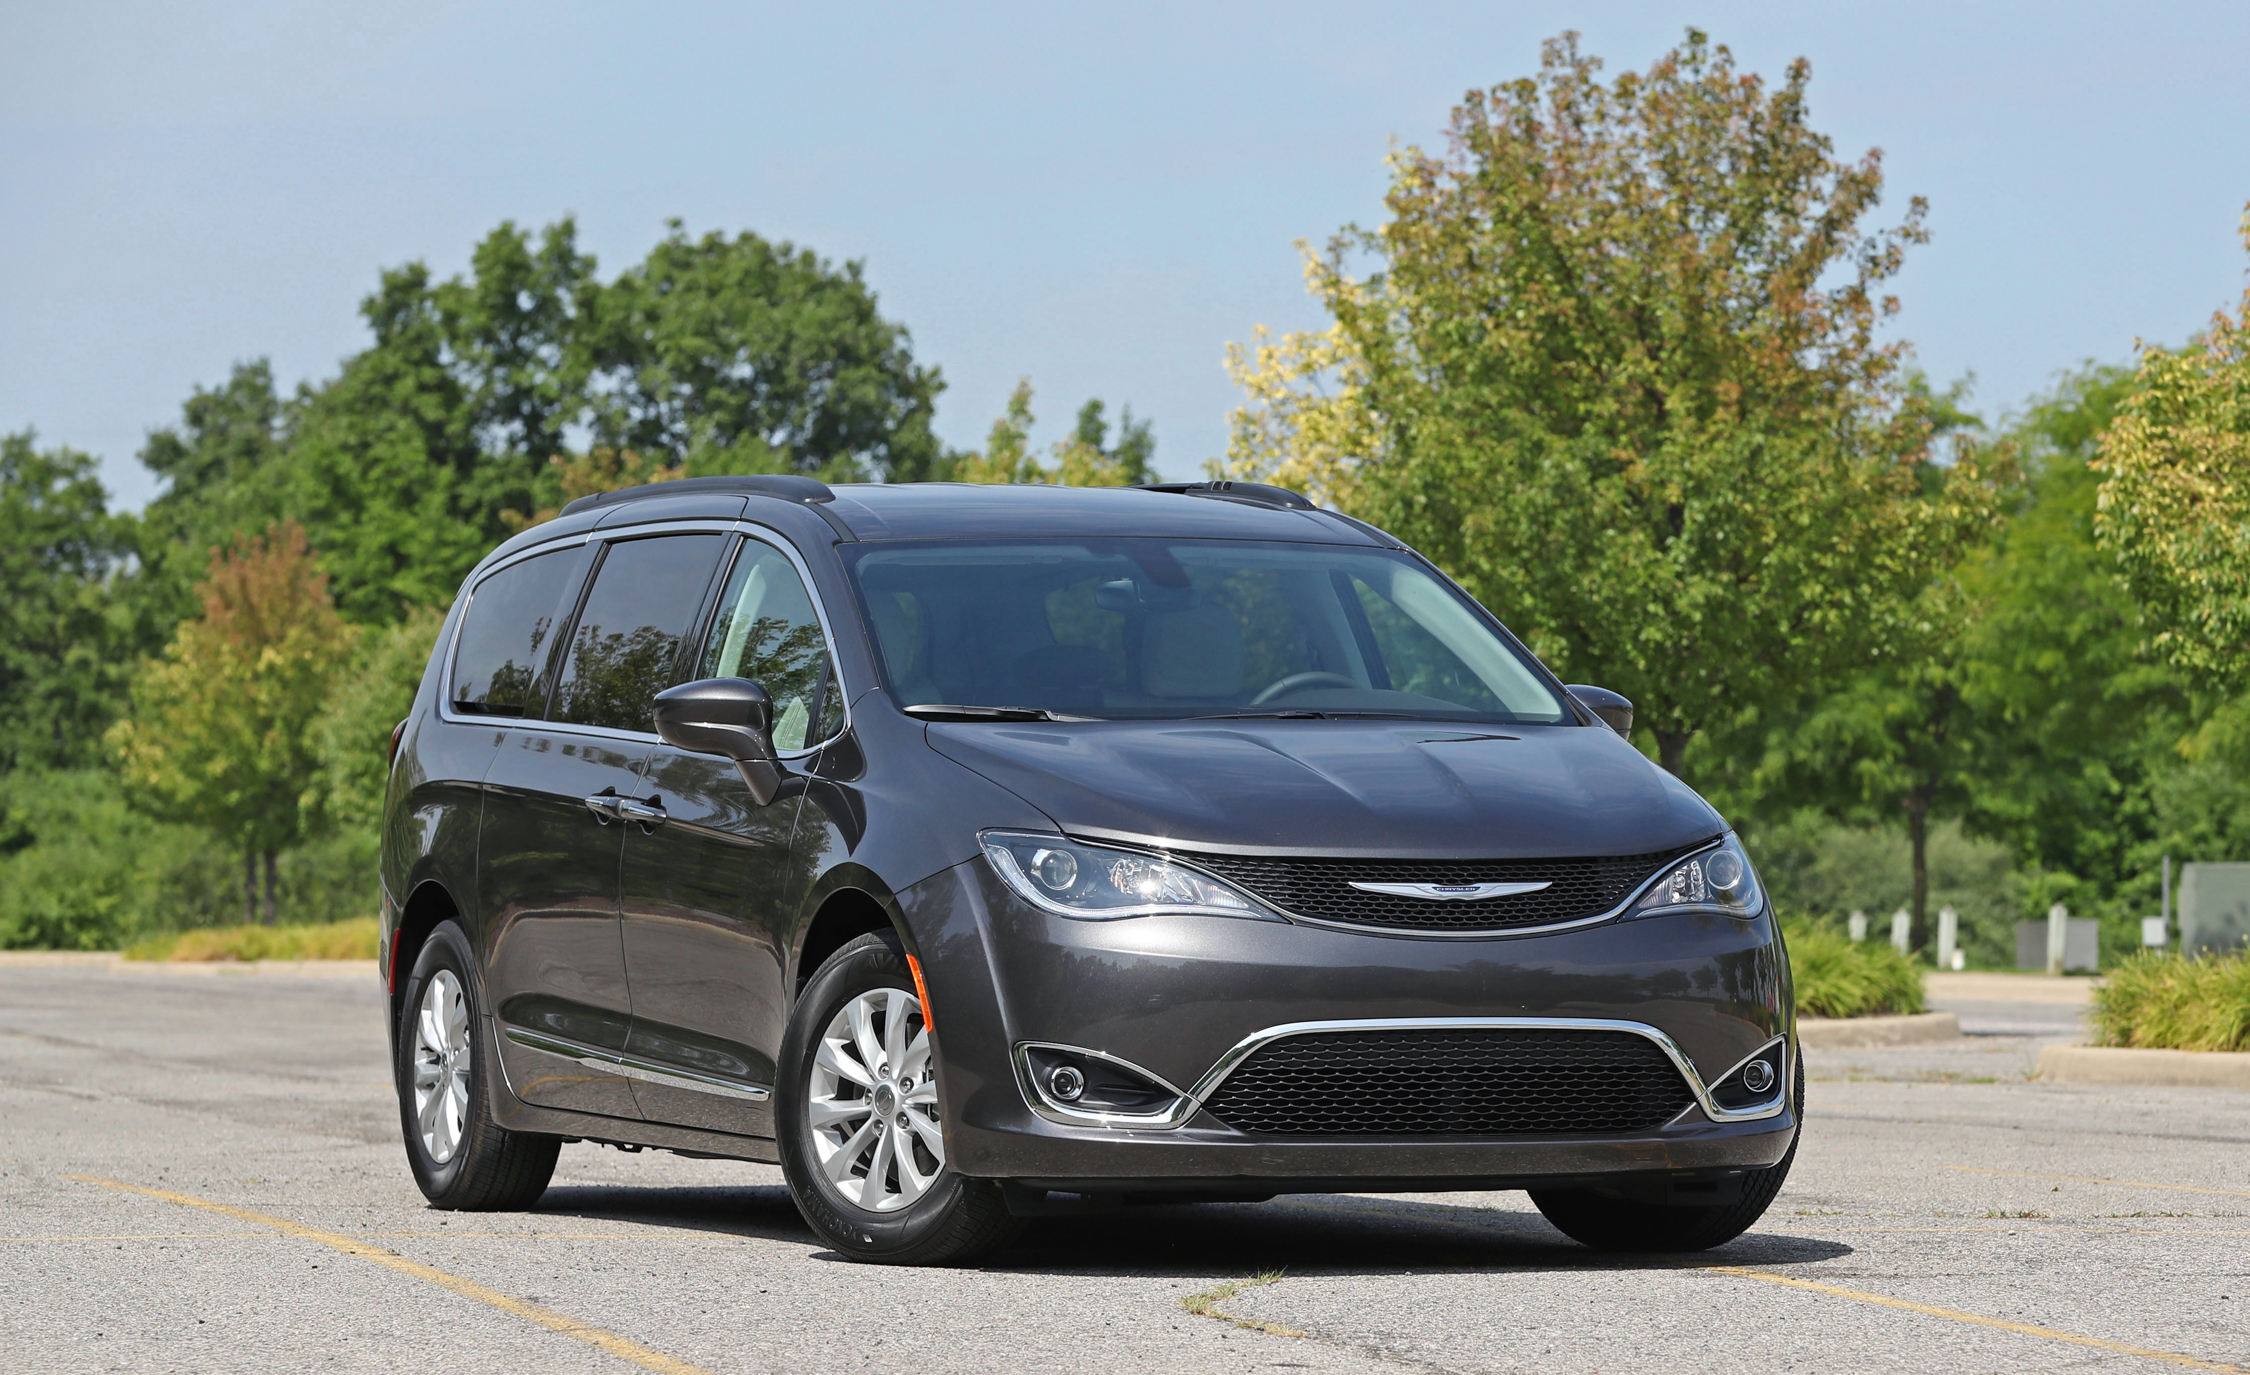 2017 Chrysler Pacifica Pictures Gallery (25 Images)